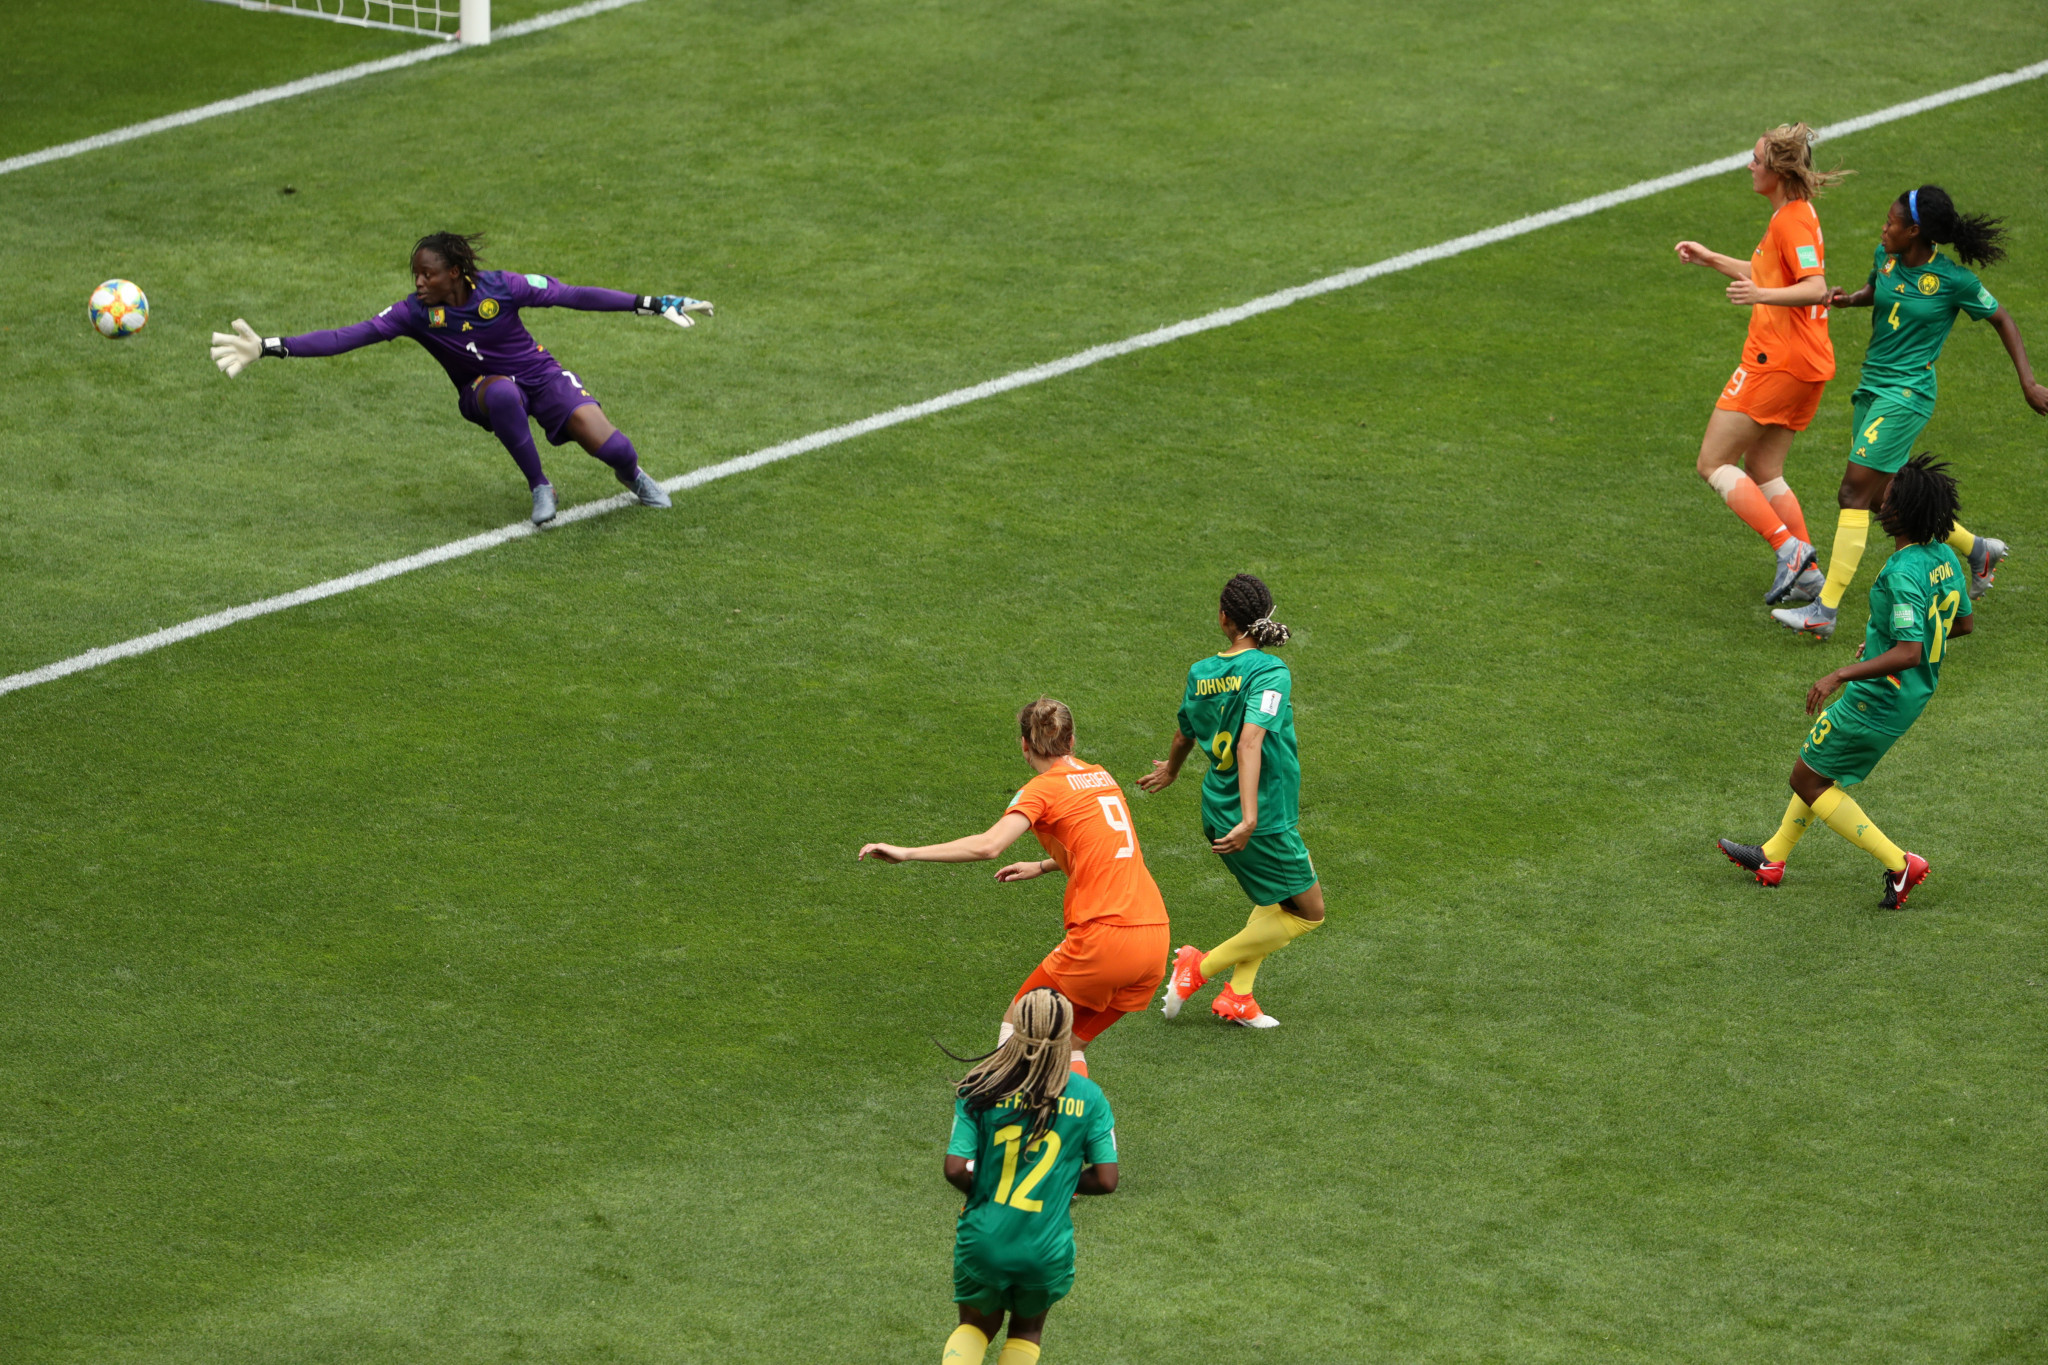 Miedema drills in her second goal to become the Netherlands' all-time top scorer ©Getty Images